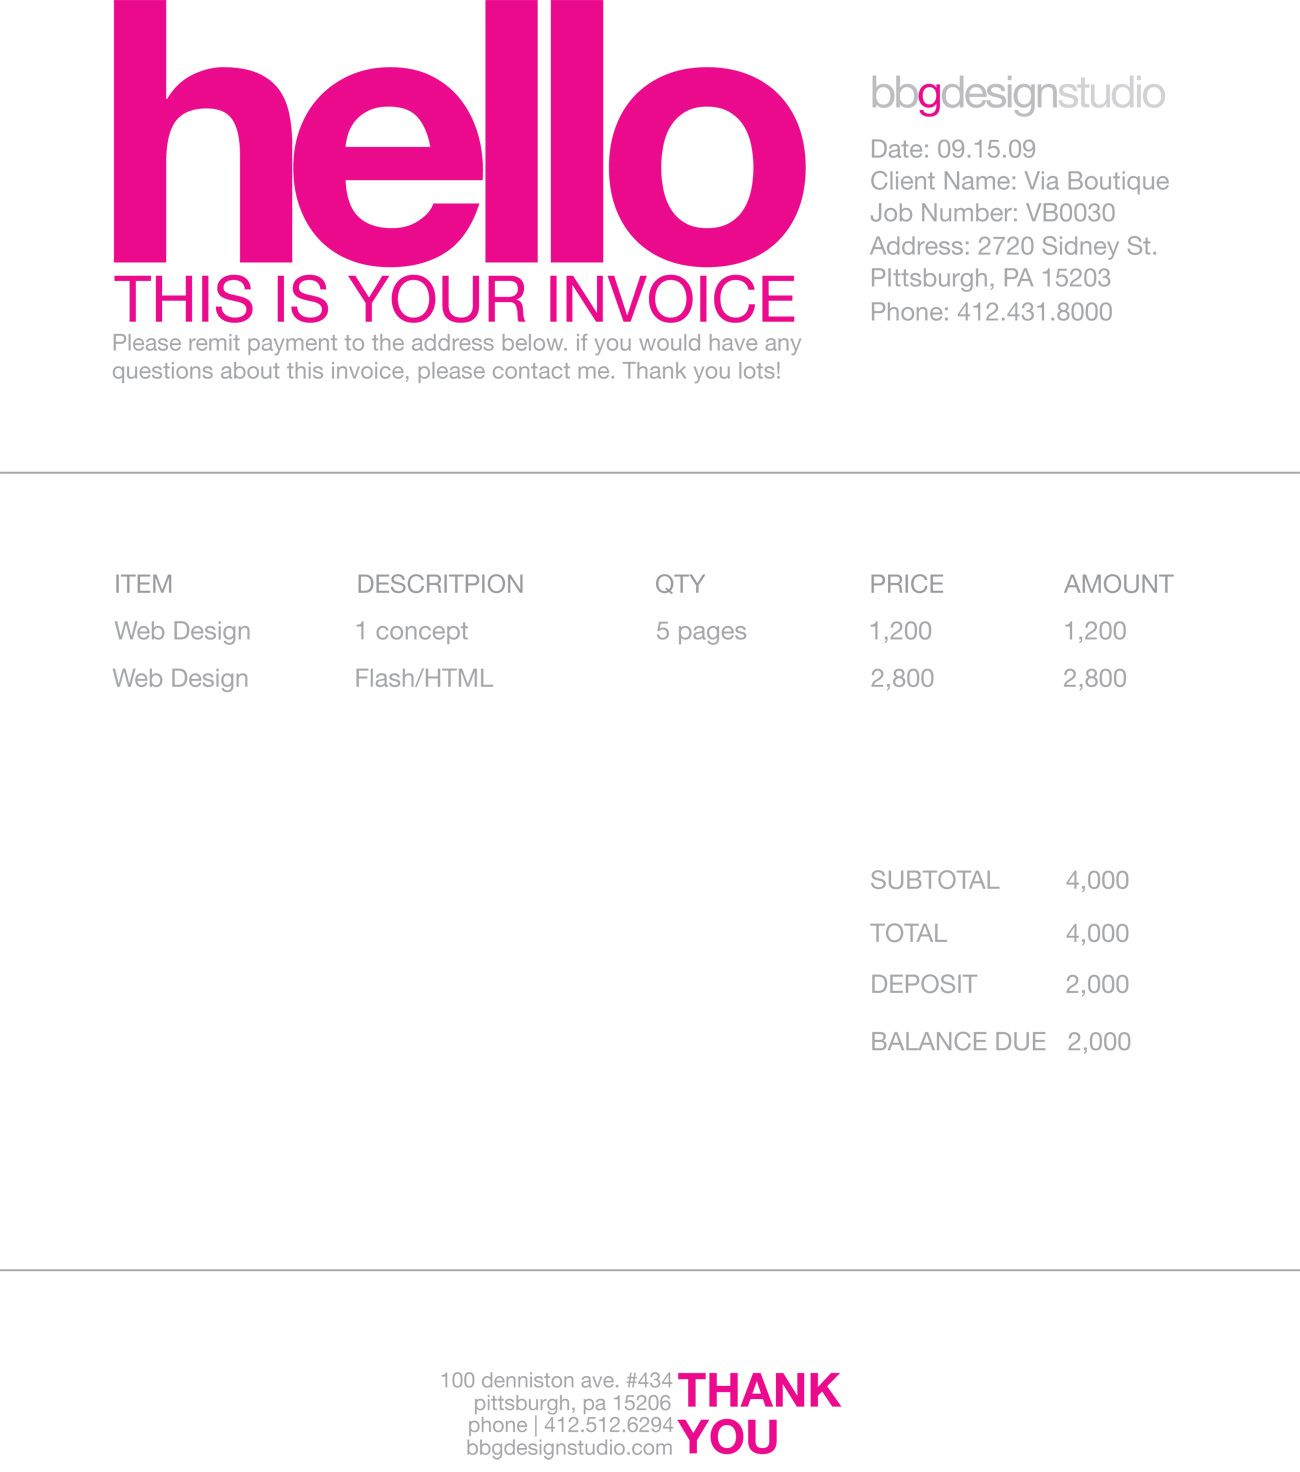 Soulfulpowerus  Unusual  Images About Invoice Design On Pinterest With Exciting Sample Consulting Invoice Word Besides Invoice Price Audi Q Furthermore Translate Invoice With Beautiful Table For Invoice Document In Sap Also Create Invoice Online Free In Addition Edmunds New Car Dealer Invoice And Auto Repair Invoice Software Free Download As Well As Customizing Invoices In Quickbooks Additionally Invoice Sample Word Format From Pinterestcom With Soulfulpowerus  Exciting  Images About Invoice Design On Pinterest With Beautiful Sample Consulting Invoice Word Besides Invoice Price Audi Q Furthermore Translate Invoice And Unusual Table For Invoice Document In Sap Also Create Invoice Online Free In Addition Edmunds New Car Dealer Invoice From Pinterestcom